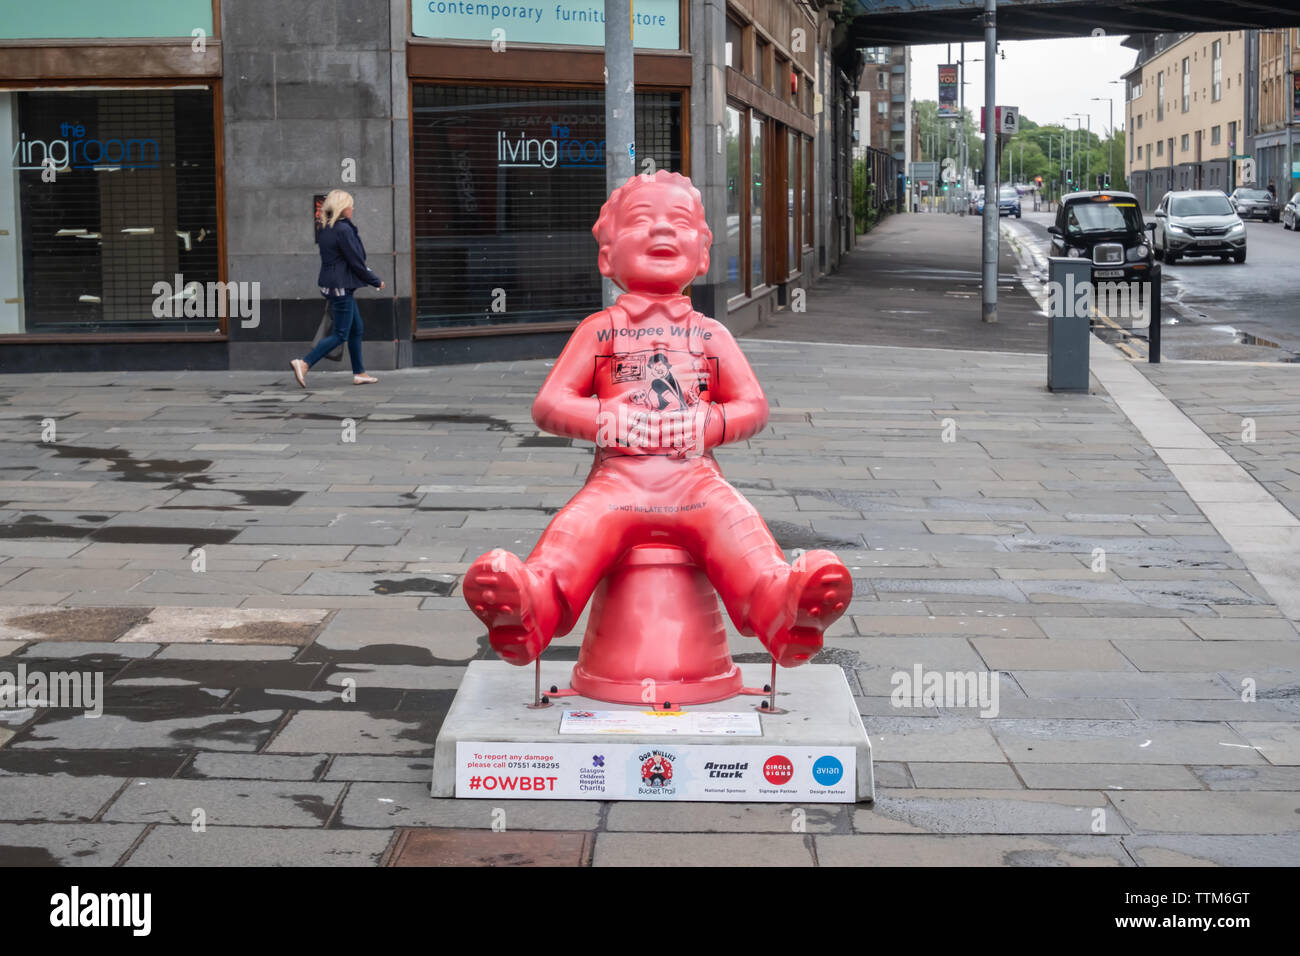 Glasgow, Scotland, UK. 17th June, 2019. Whoopee Wullie, Created by Conzo Throb. Oor Wullie is depicted as a huge whoopee cushion, true to his style, full of cheek and practical jokes. The sculpture is part of Oor Wullie's BIG Bucket Trail. Credit: Skully/Alamy Live News - Stock Image